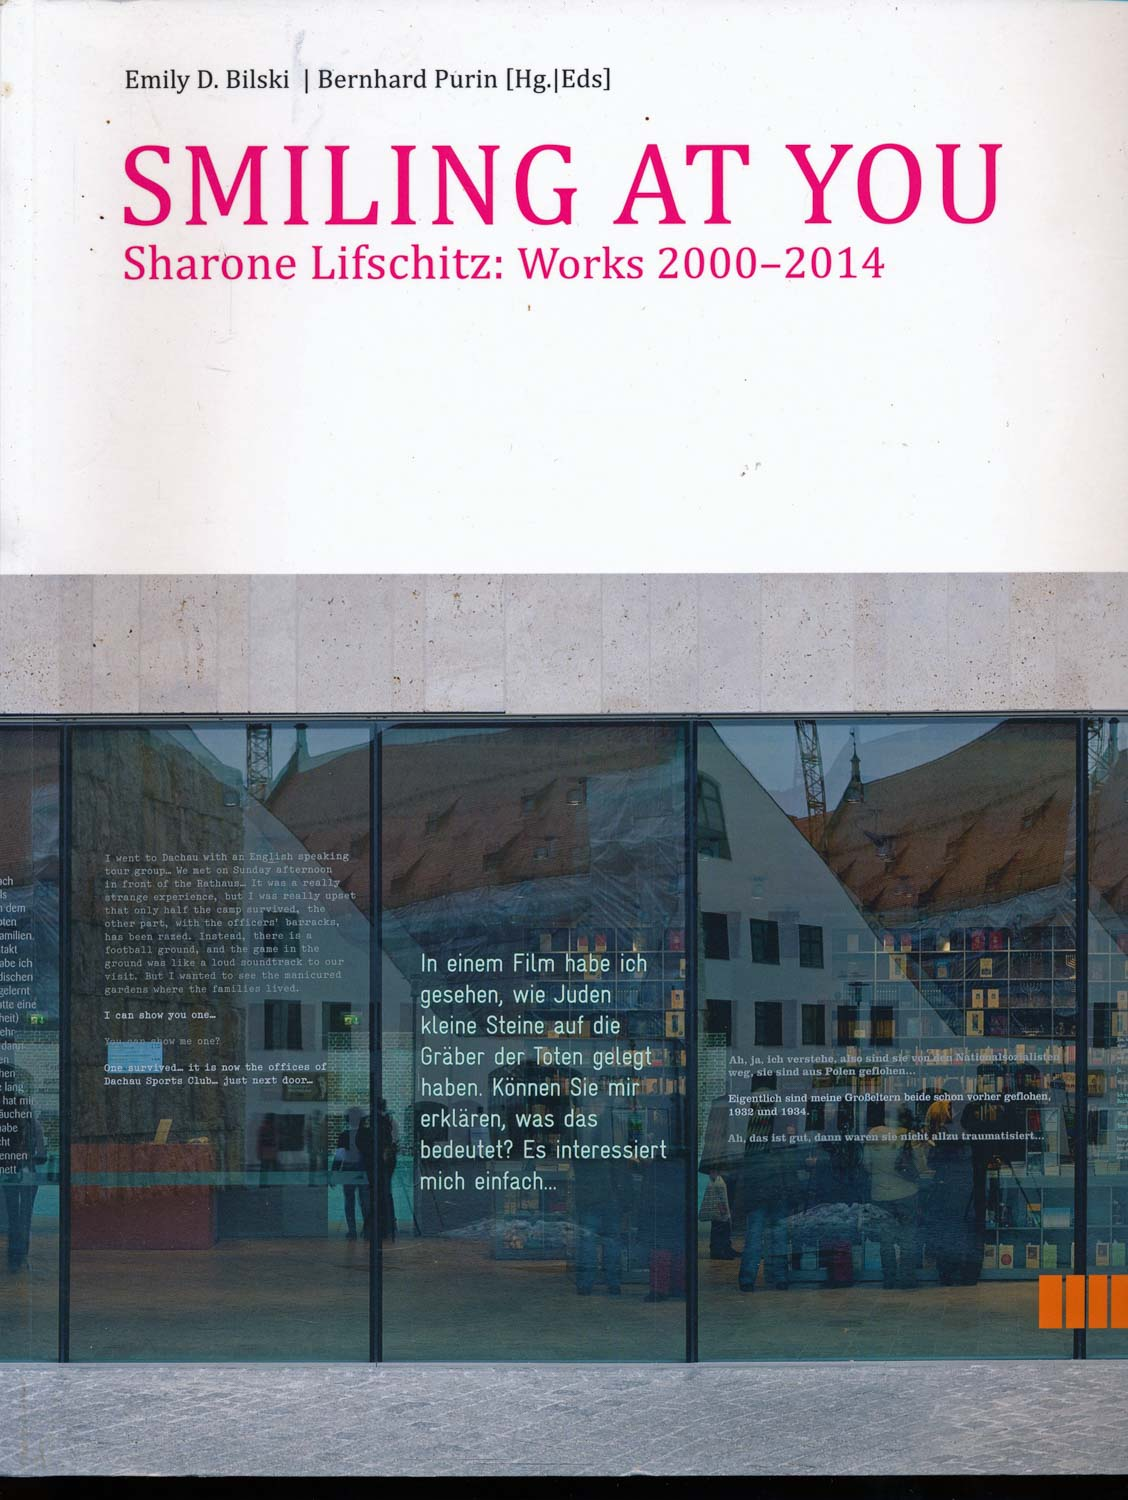 Smiling at you. Sharone Lifschitz: Works 2000 - 2014.